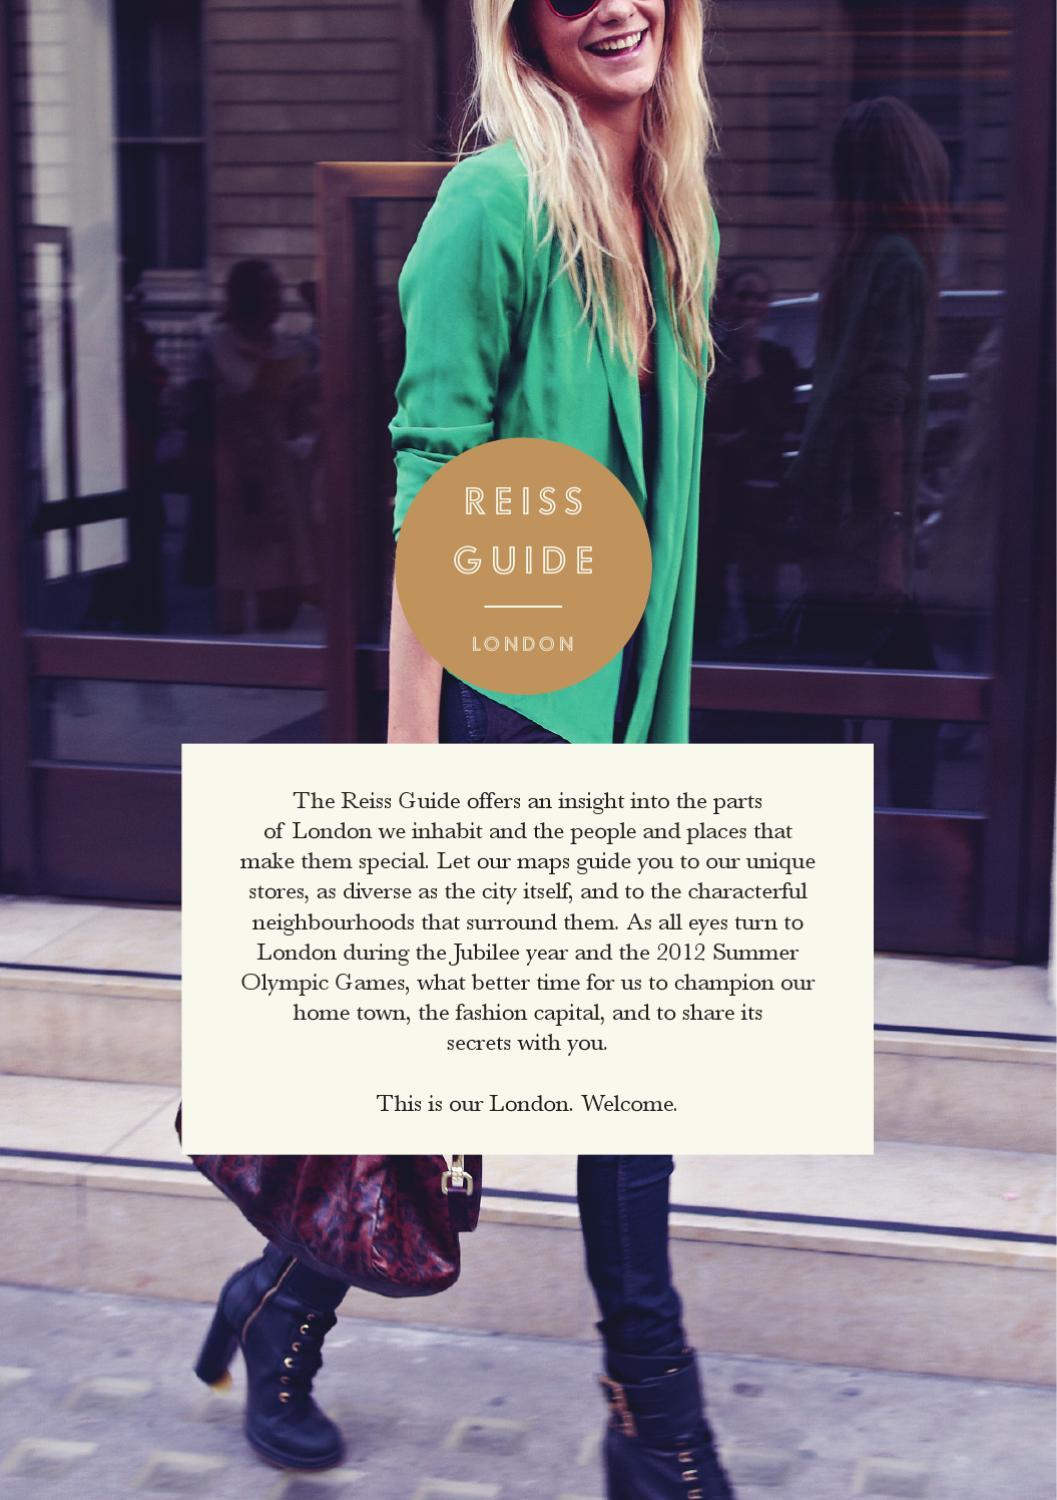 cdf68afe515 Reiss London Guide by REISS - issuu